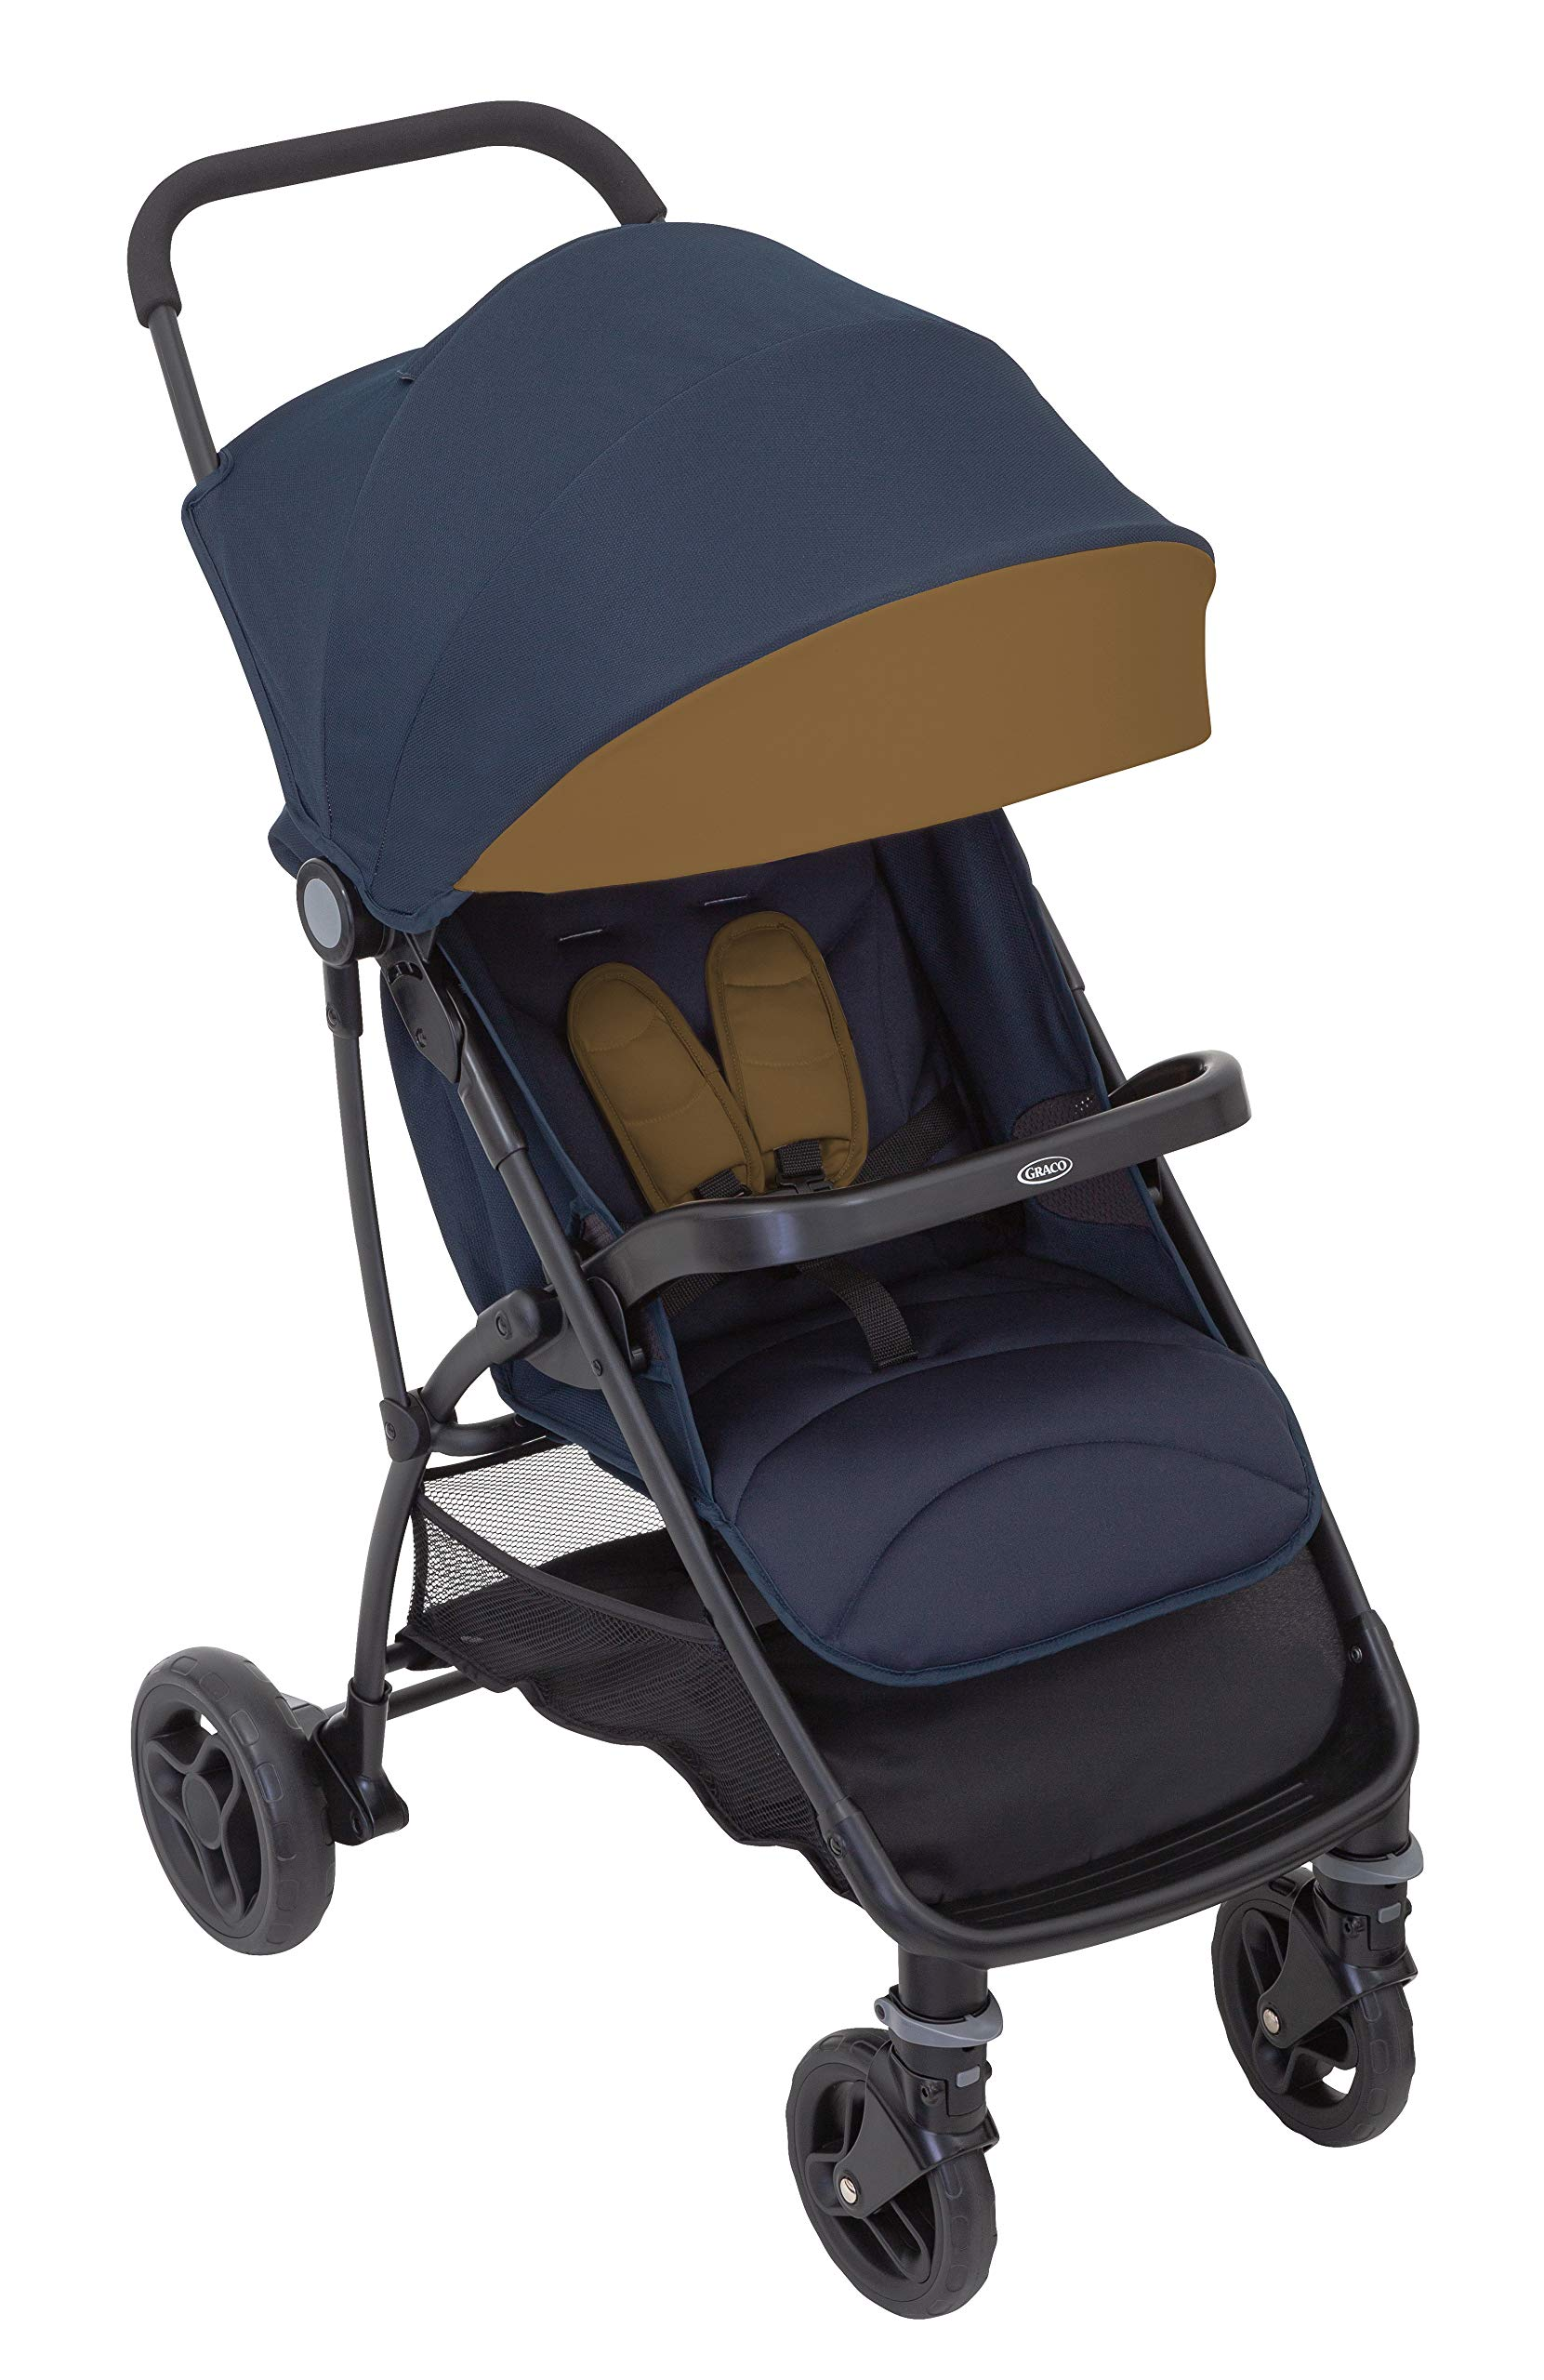 Graco Breaze Lite i-Size Travel System, Eclipse Graco From birth to 3 years approx. (0-15kg) Travel system package with snug essentials isize infant car seat included Lightweight stroller at only 6.5kg 2